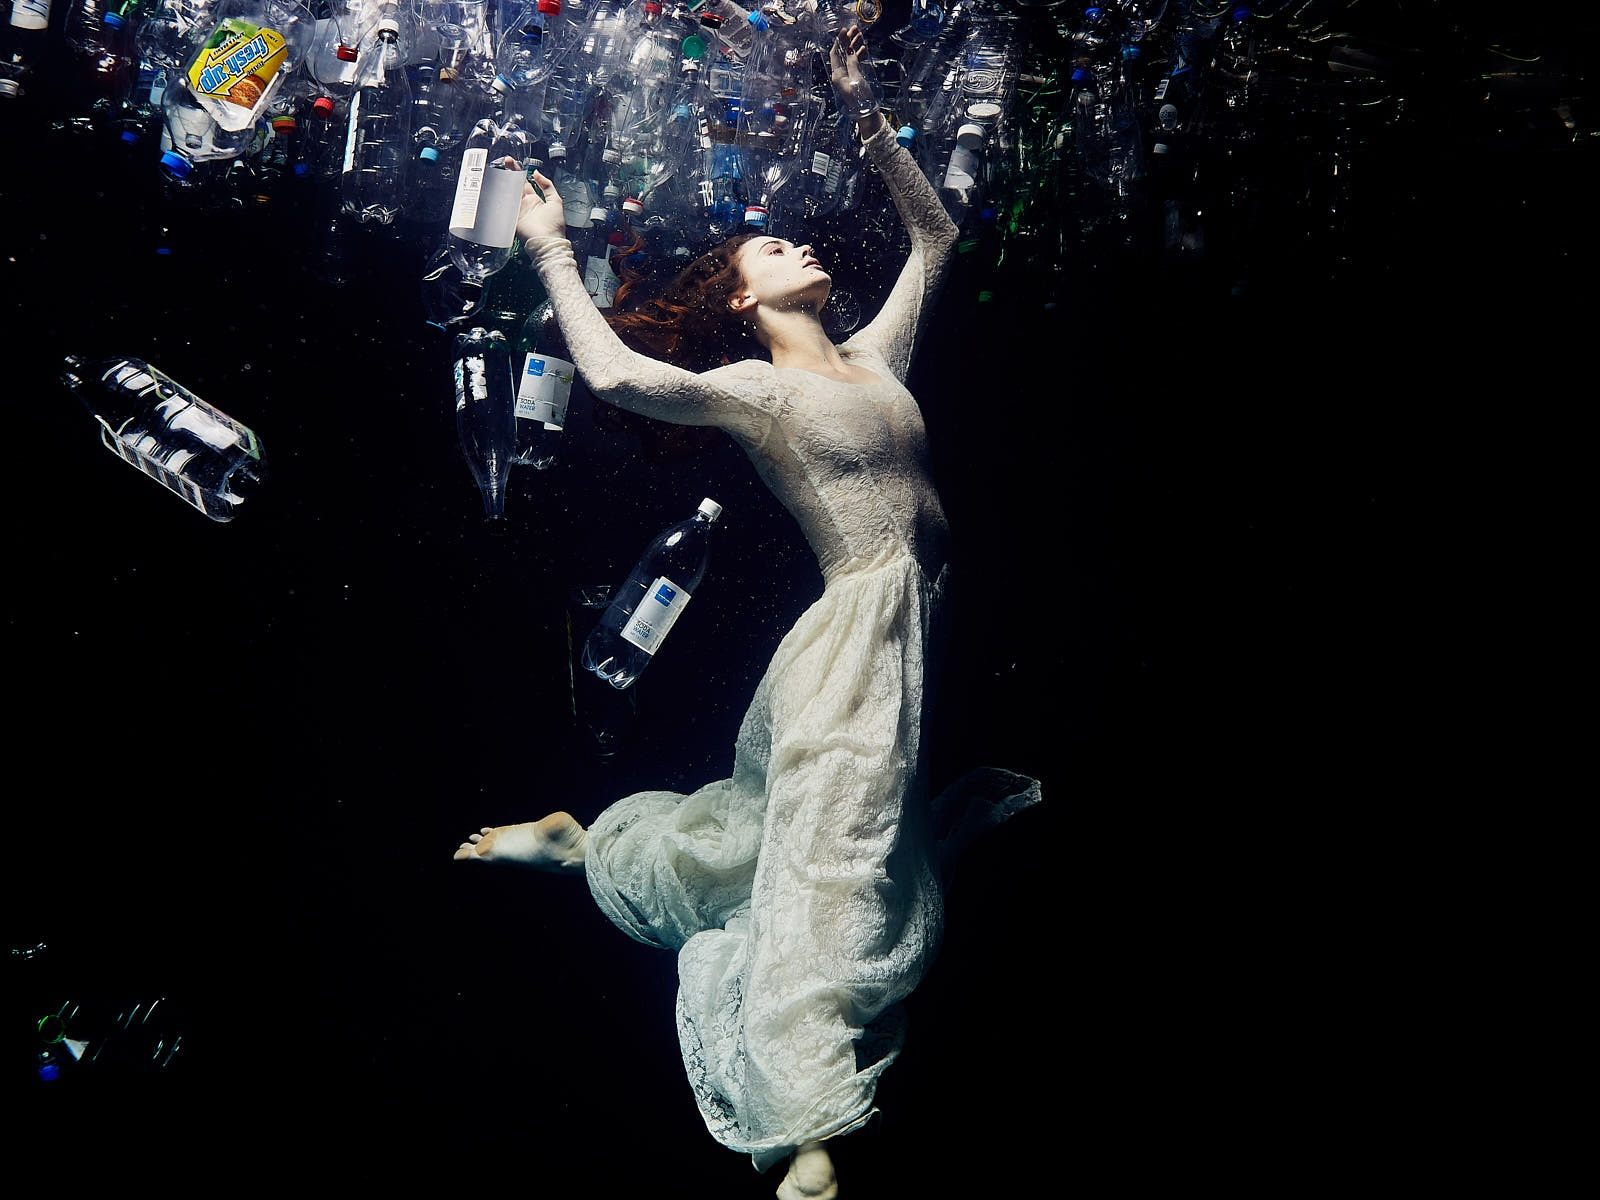 Ocean Plastic Dancers - A series of photos and short films highlight pollution of our ocean.